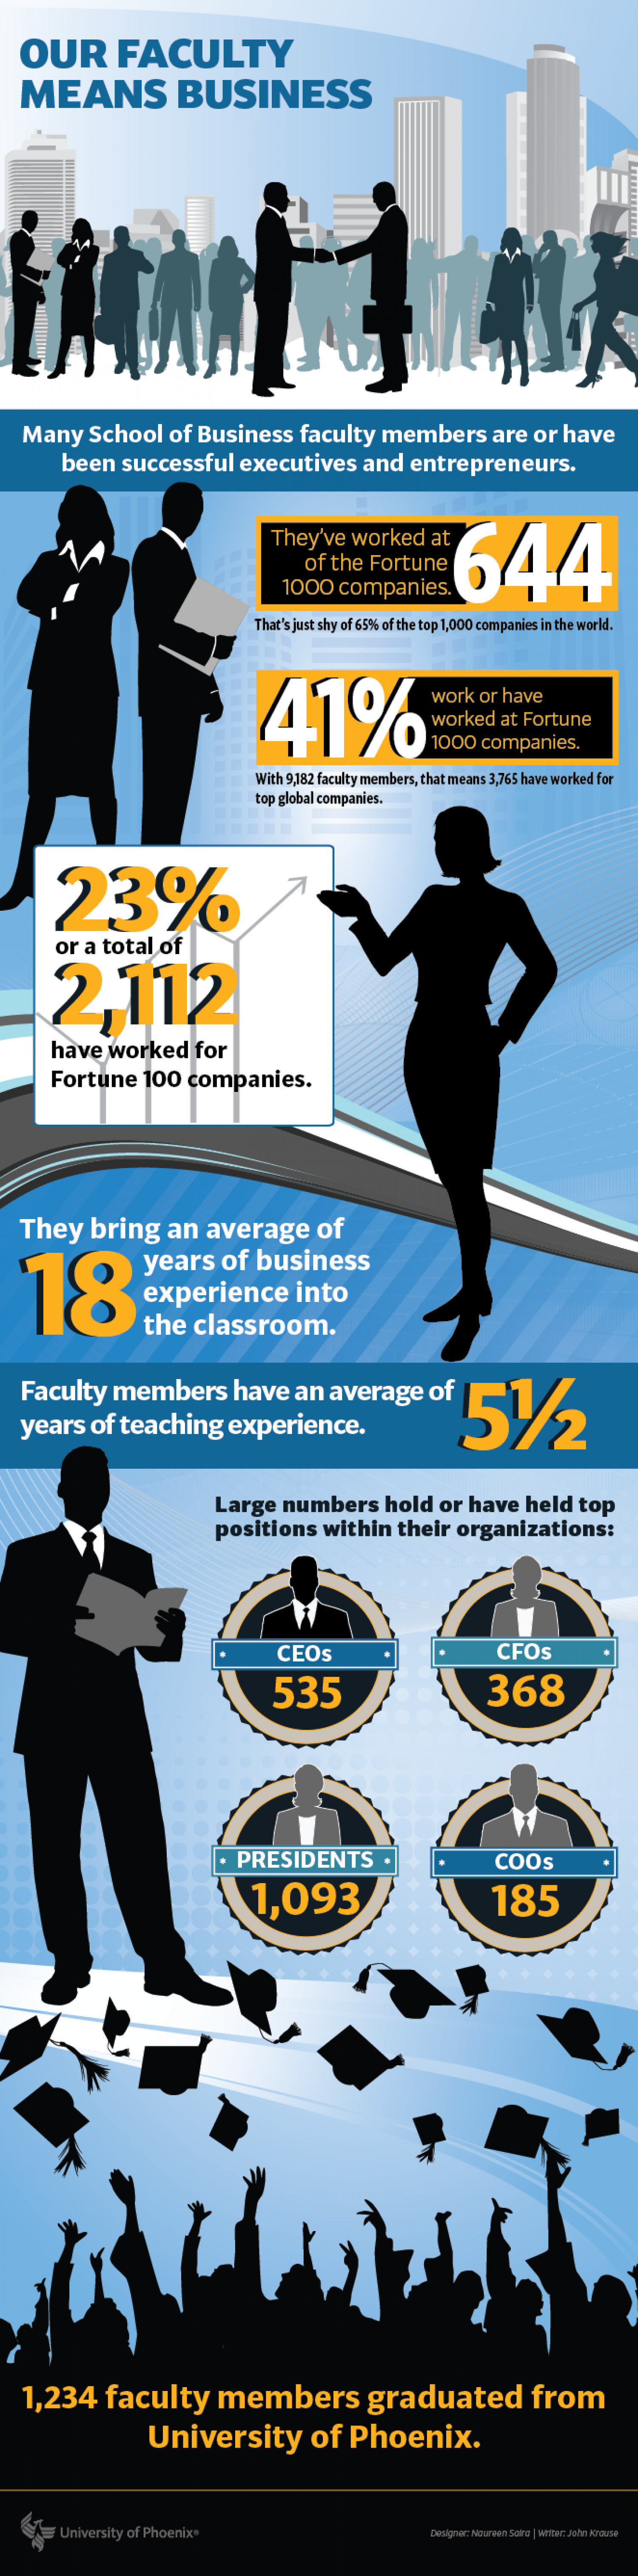 Our Faculty Means Business Infographic